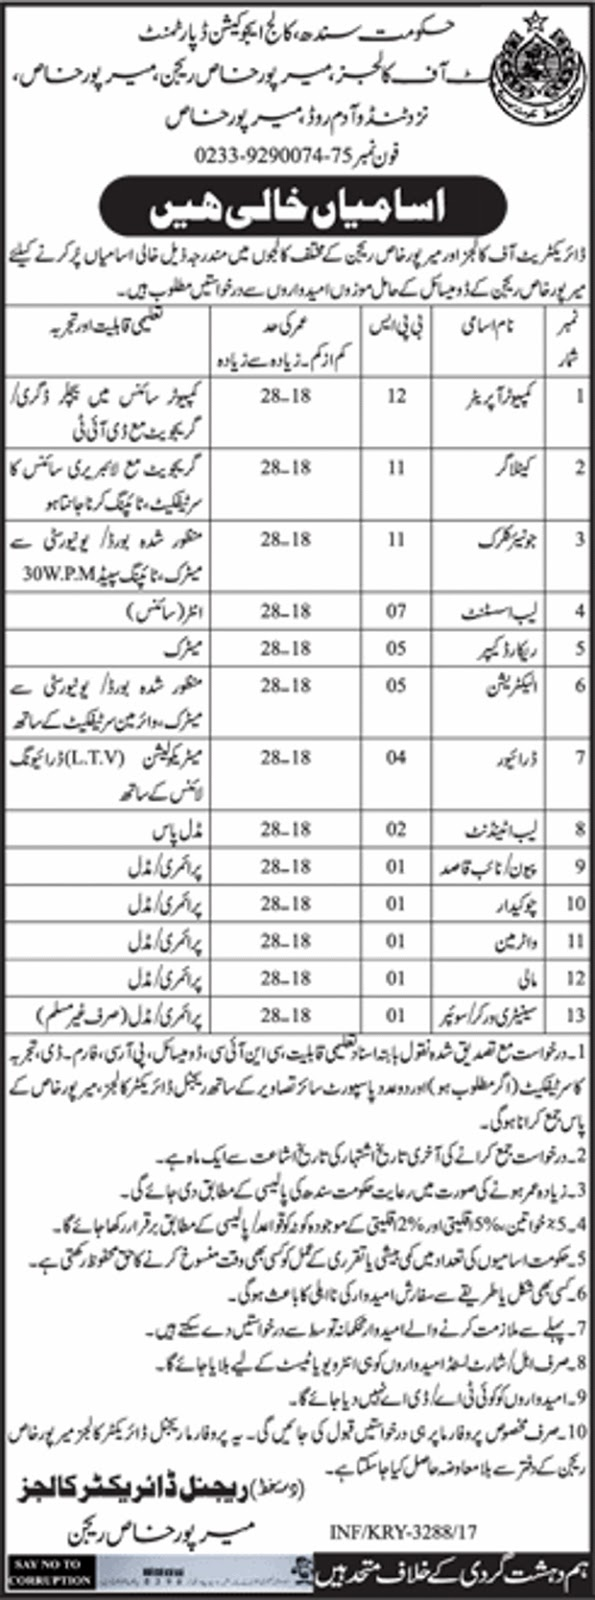 Jobs in Sindh College Education Department Mirpurkhas 6 july 2017